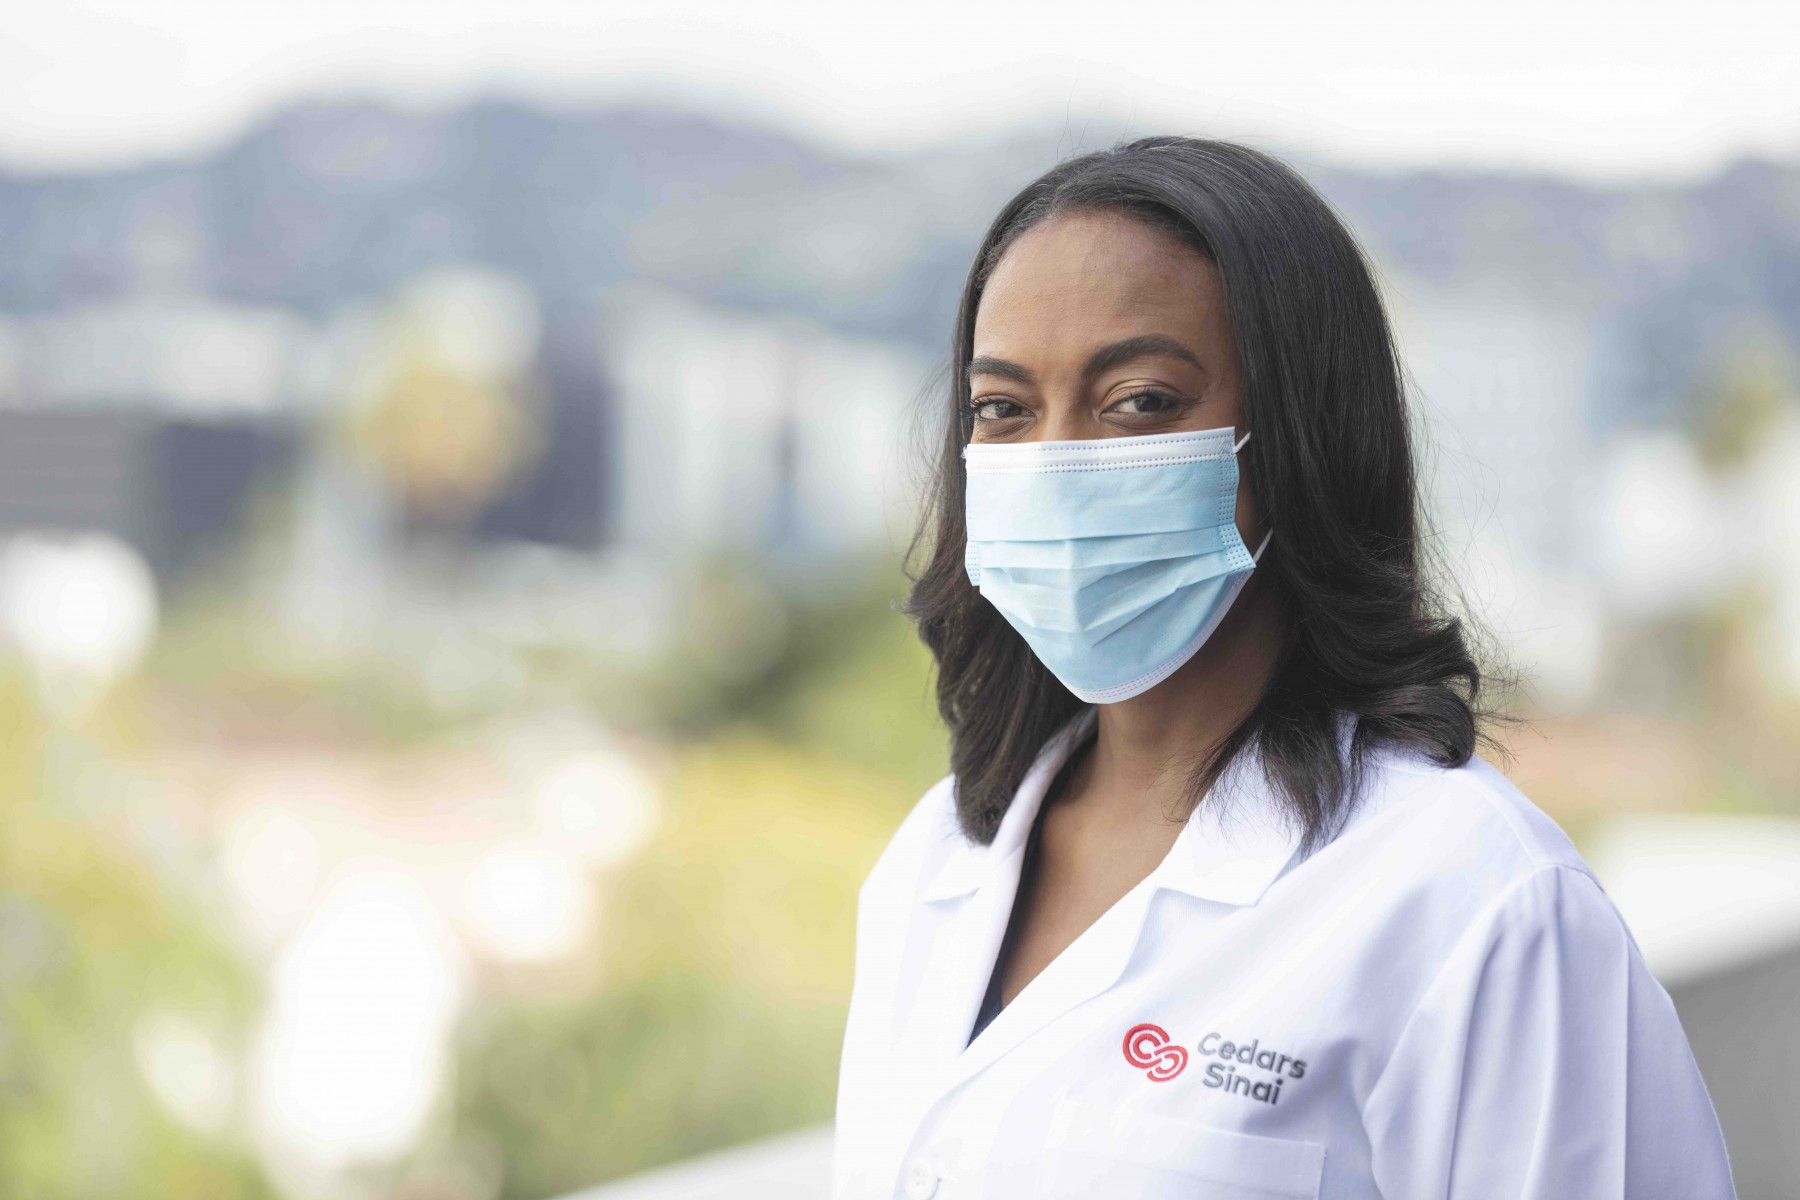 In order to fight health disparities, it can help to get care from physician who understands your personal needs and risk factors. Photo by Cedars-Sinai.